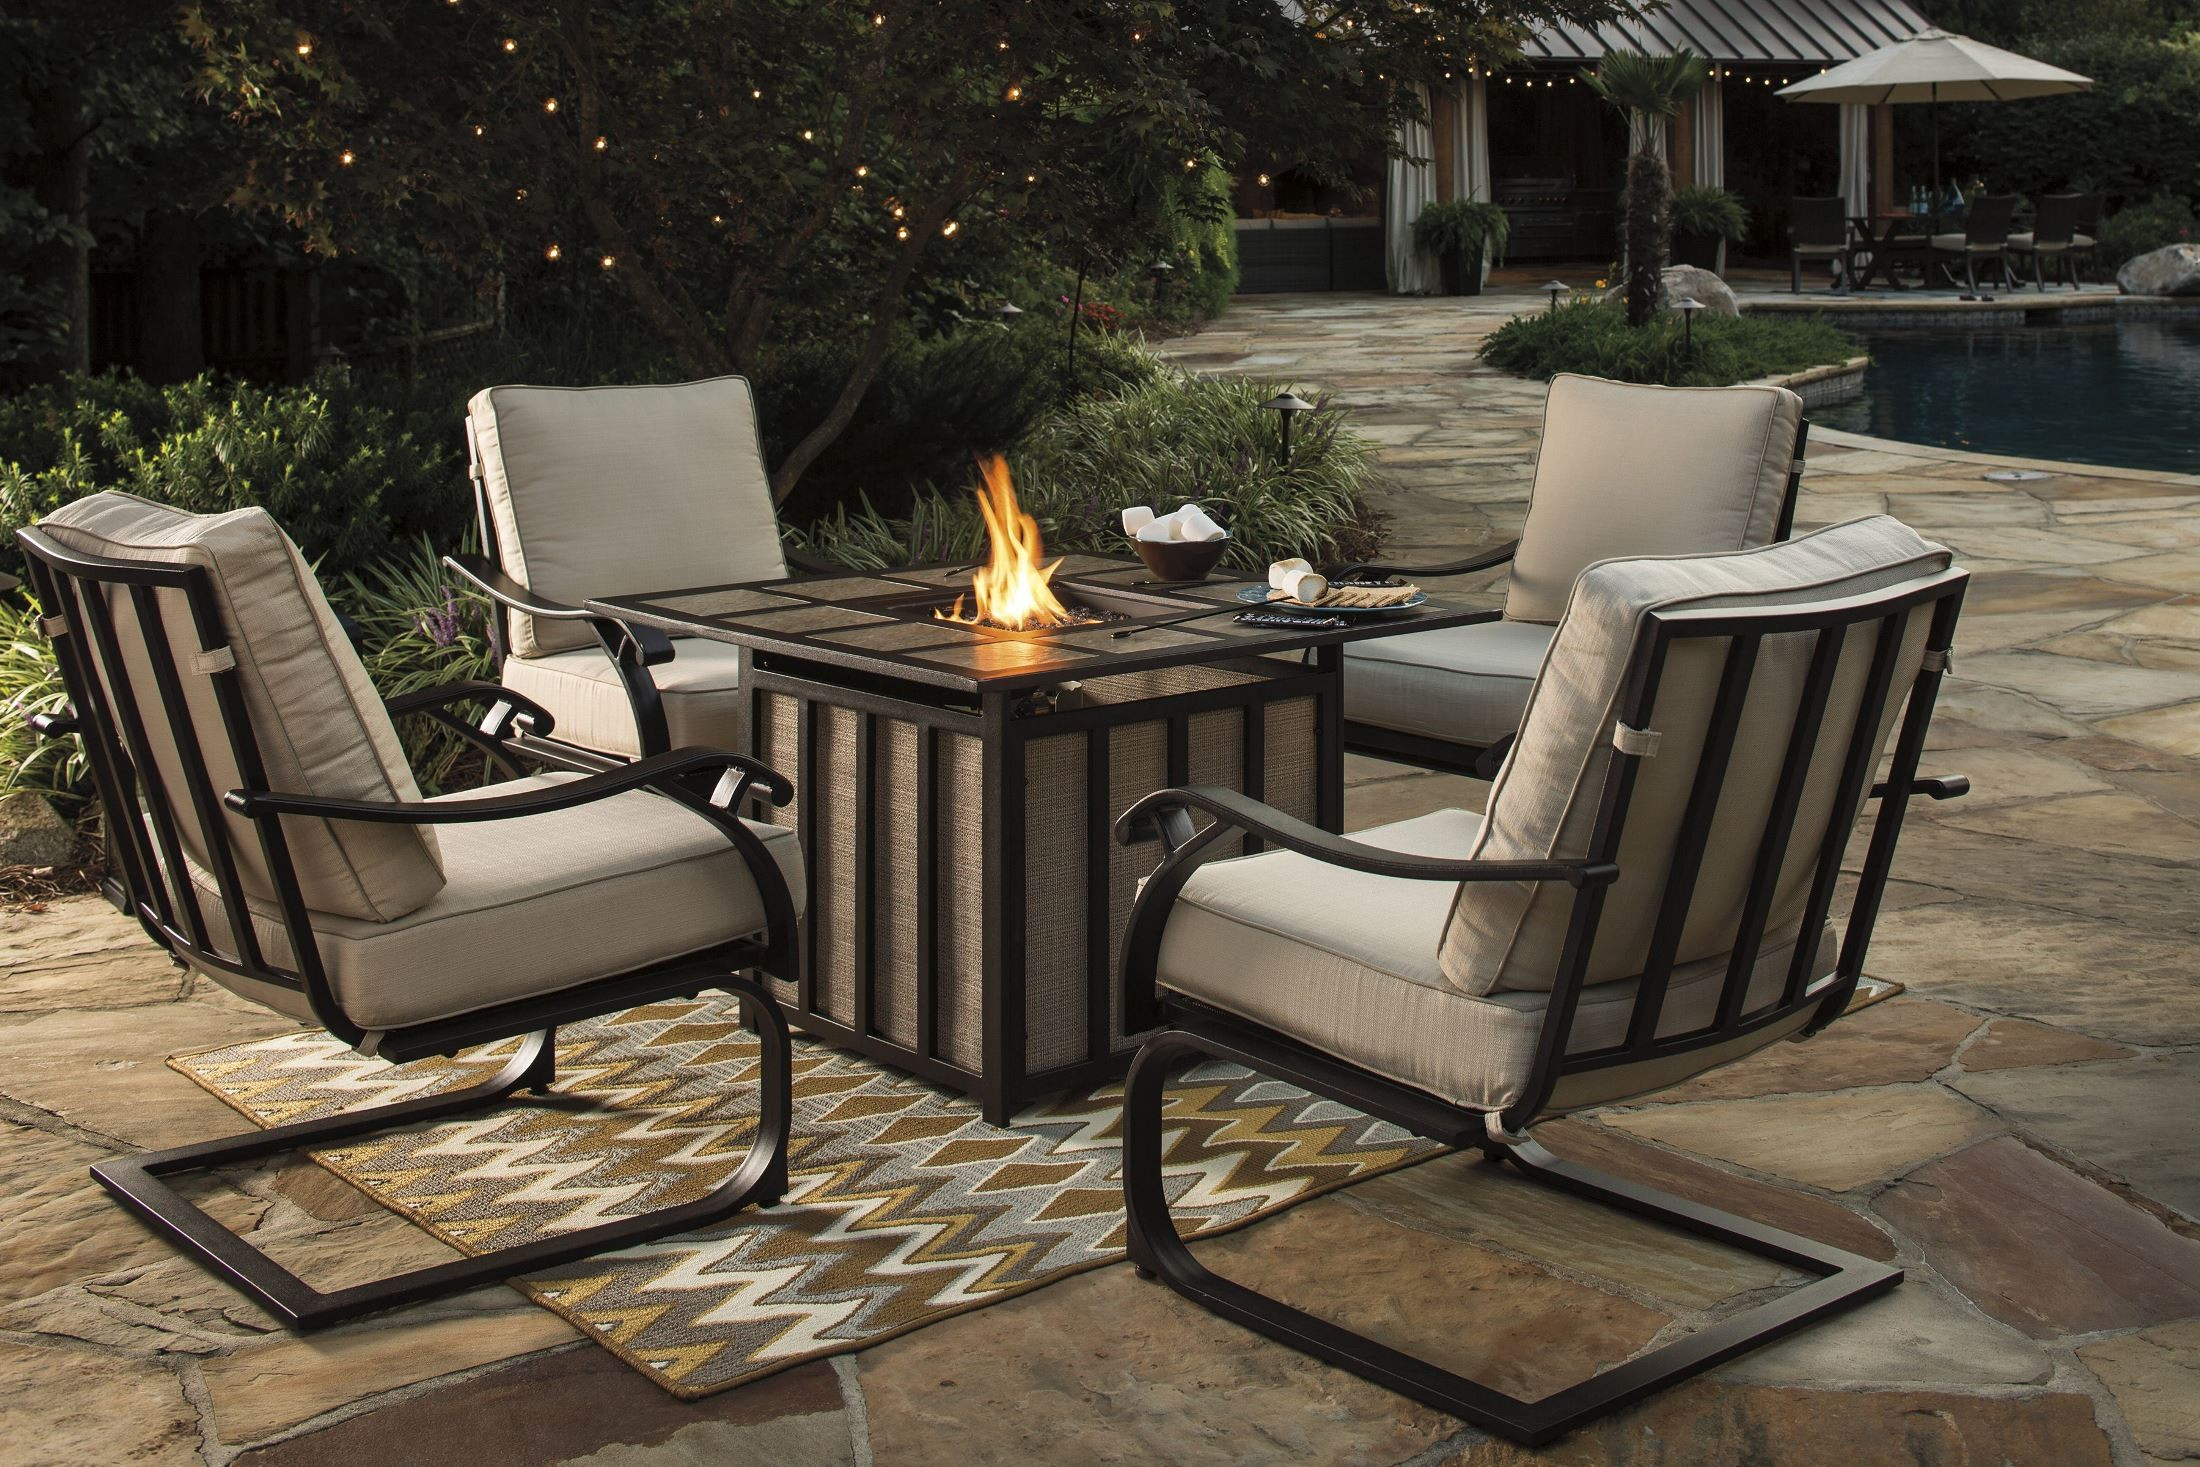 wandon beige and brown outdoor square fire pit outdoor dining set from ashley coleman furniture. Black Bedroom Furniture Sets. Home Design Ideas